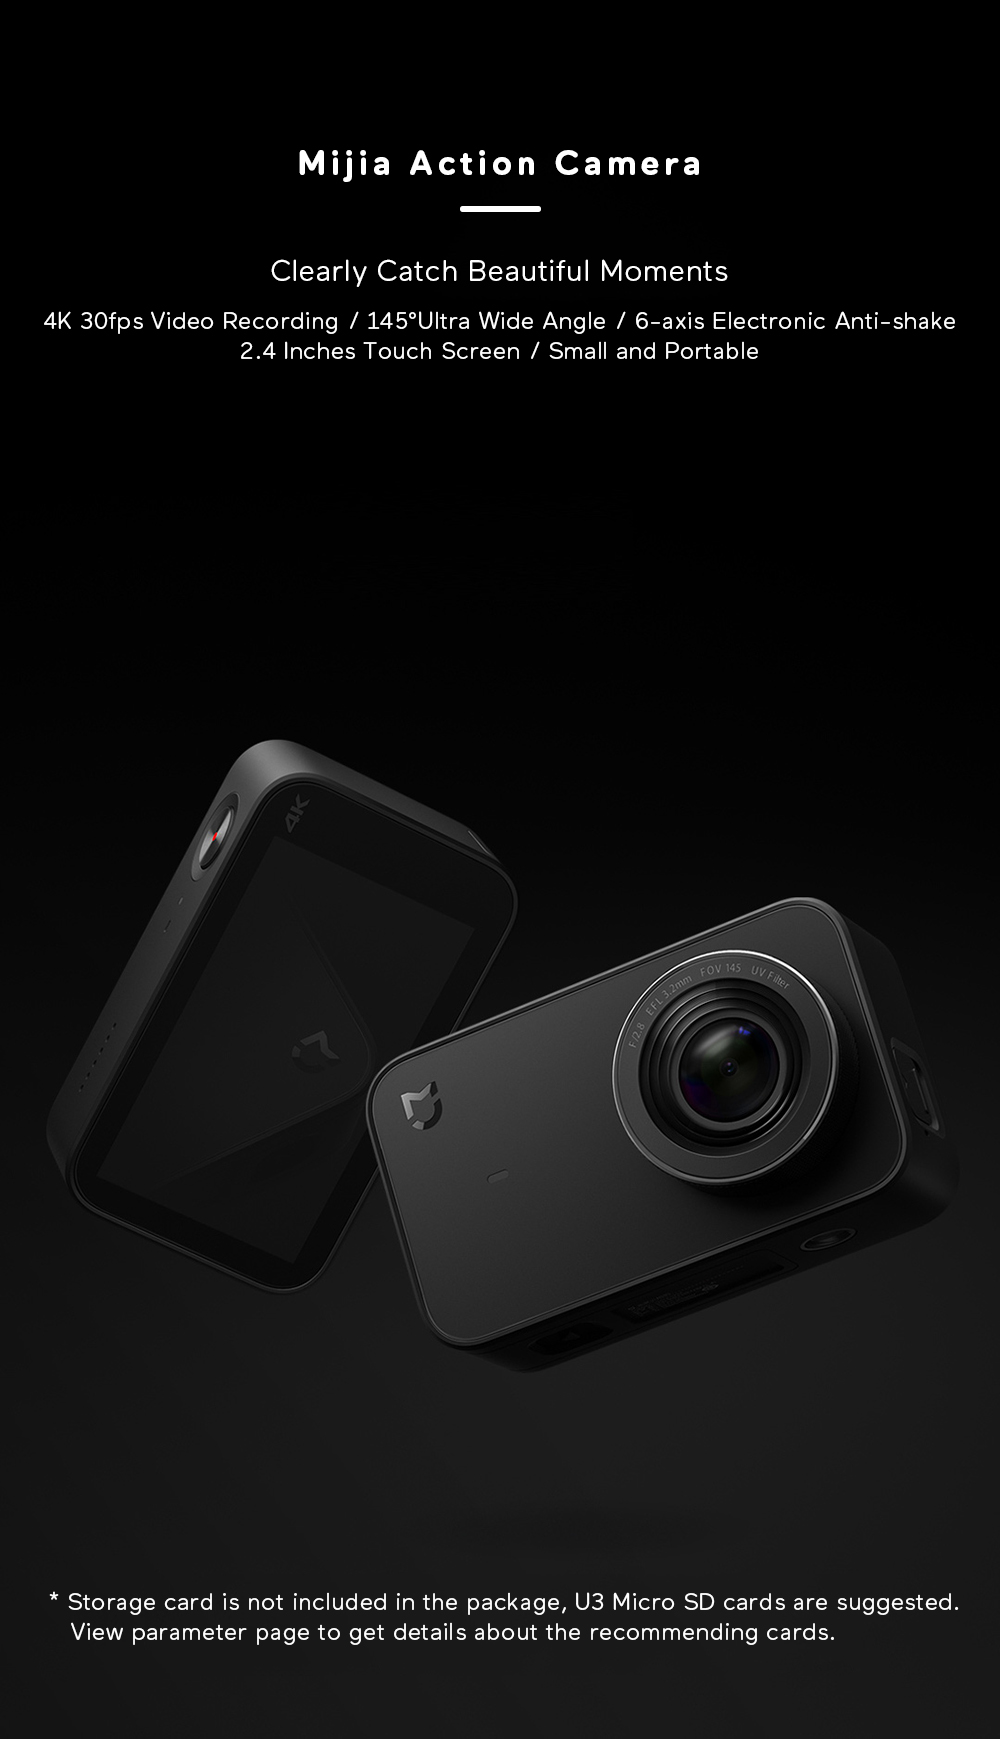 Xiaomi Mijia 4K Ambarella A12S75 Sony IMX317 2,4 - crna - image Xiaomi-Camera-Mijia-4K-Action-Camera-20170824174644451 on https://smartmall.hr